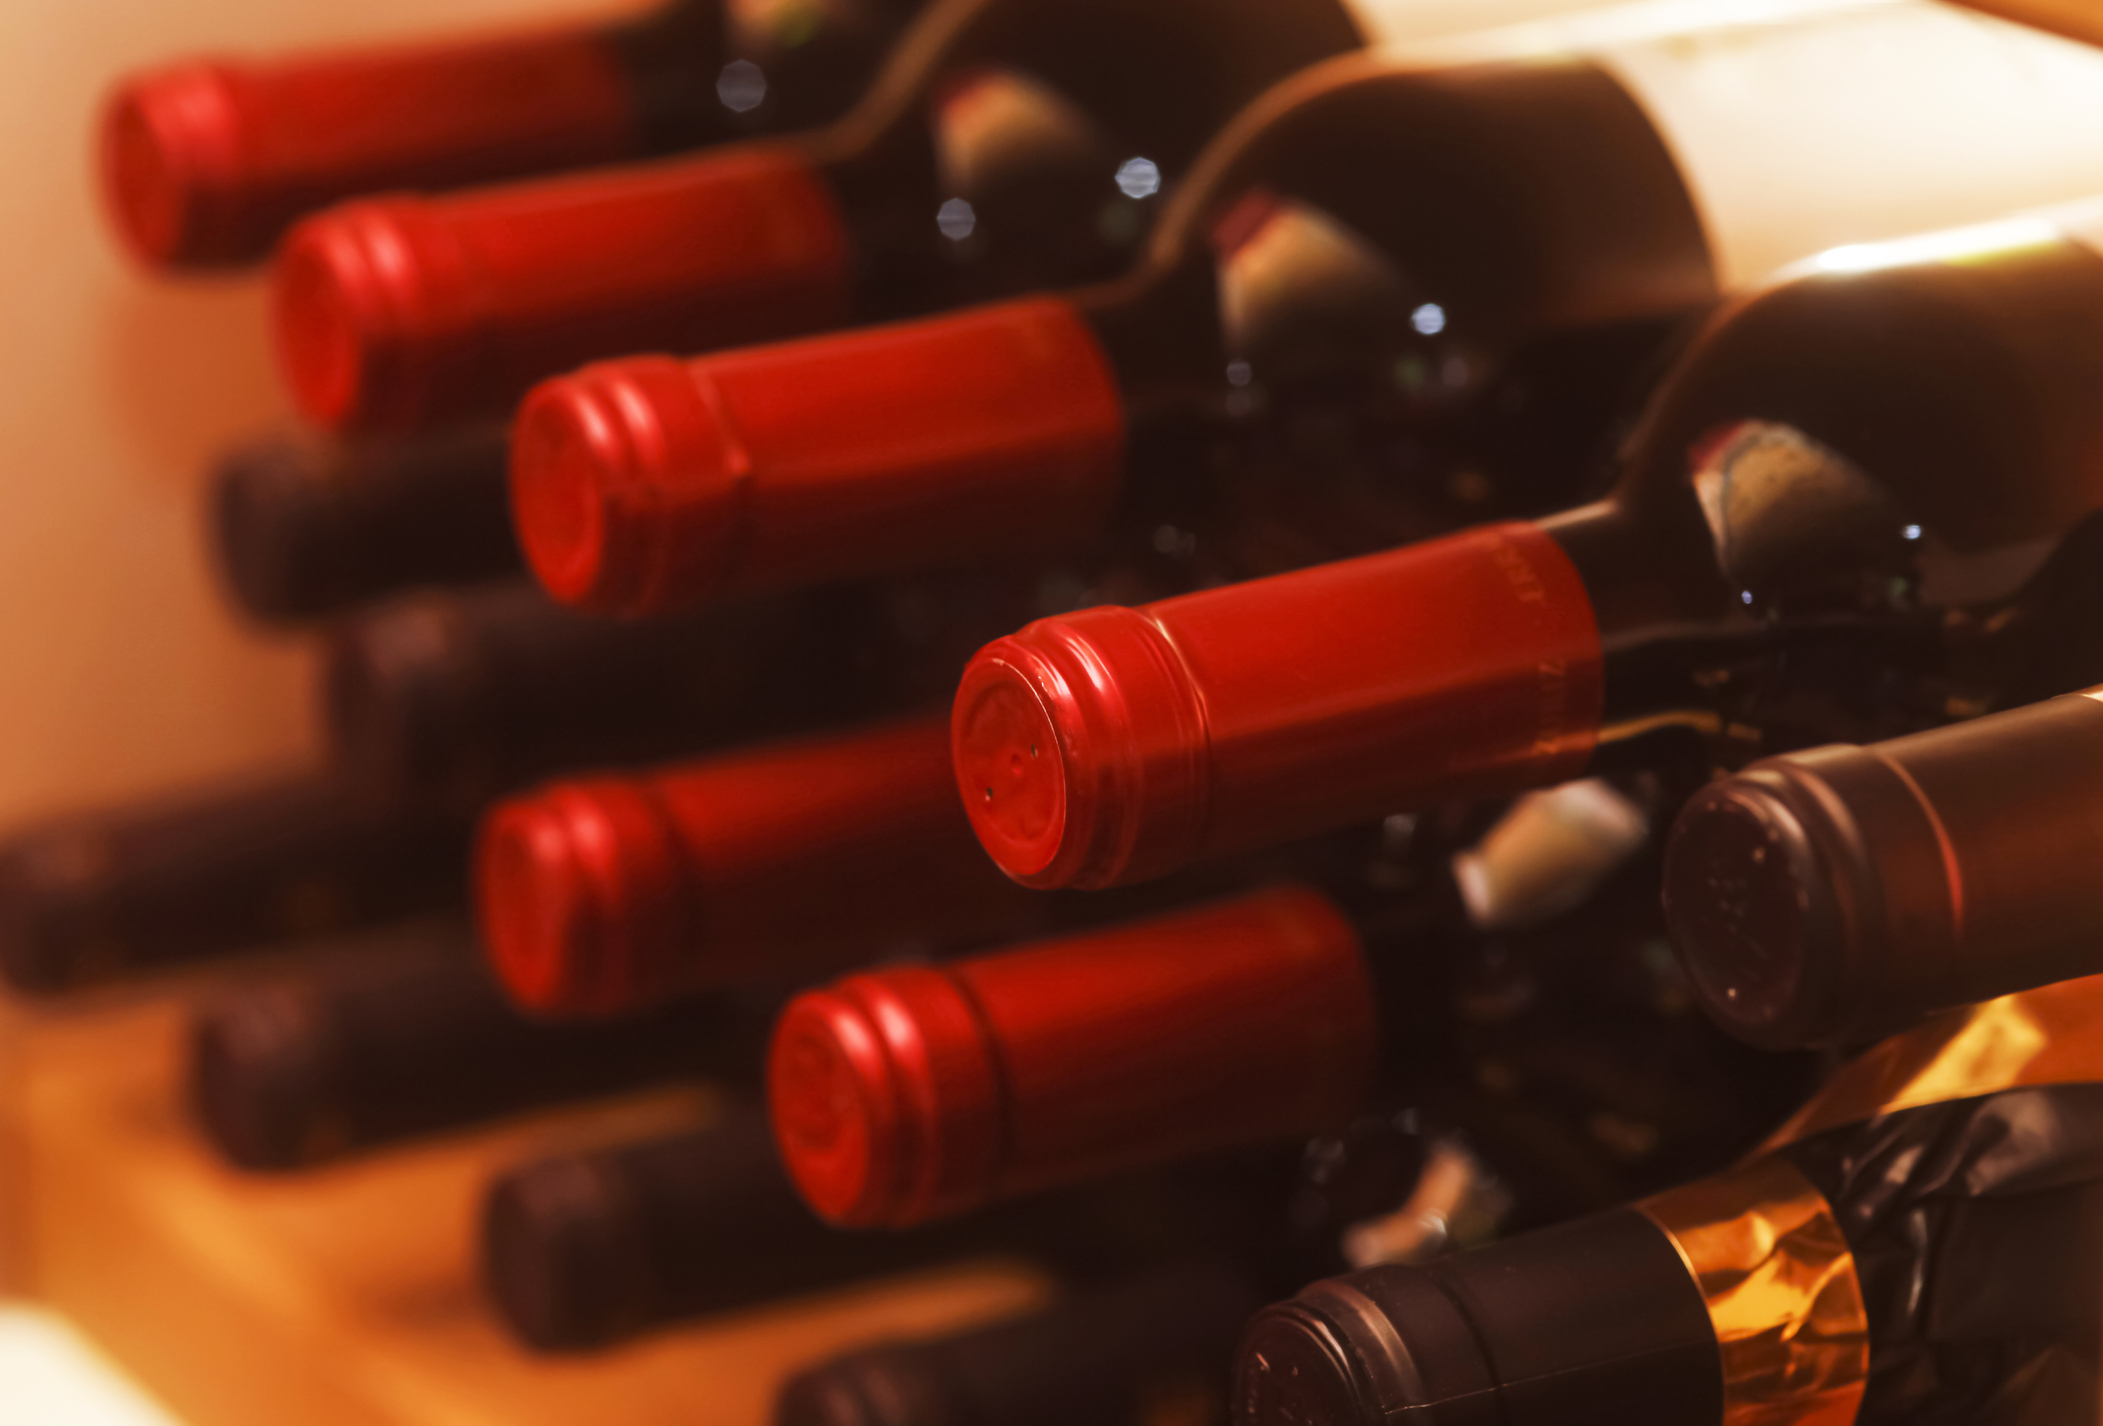 How To Store Red Wine At The Optimum Temperature Range Lovetoknow